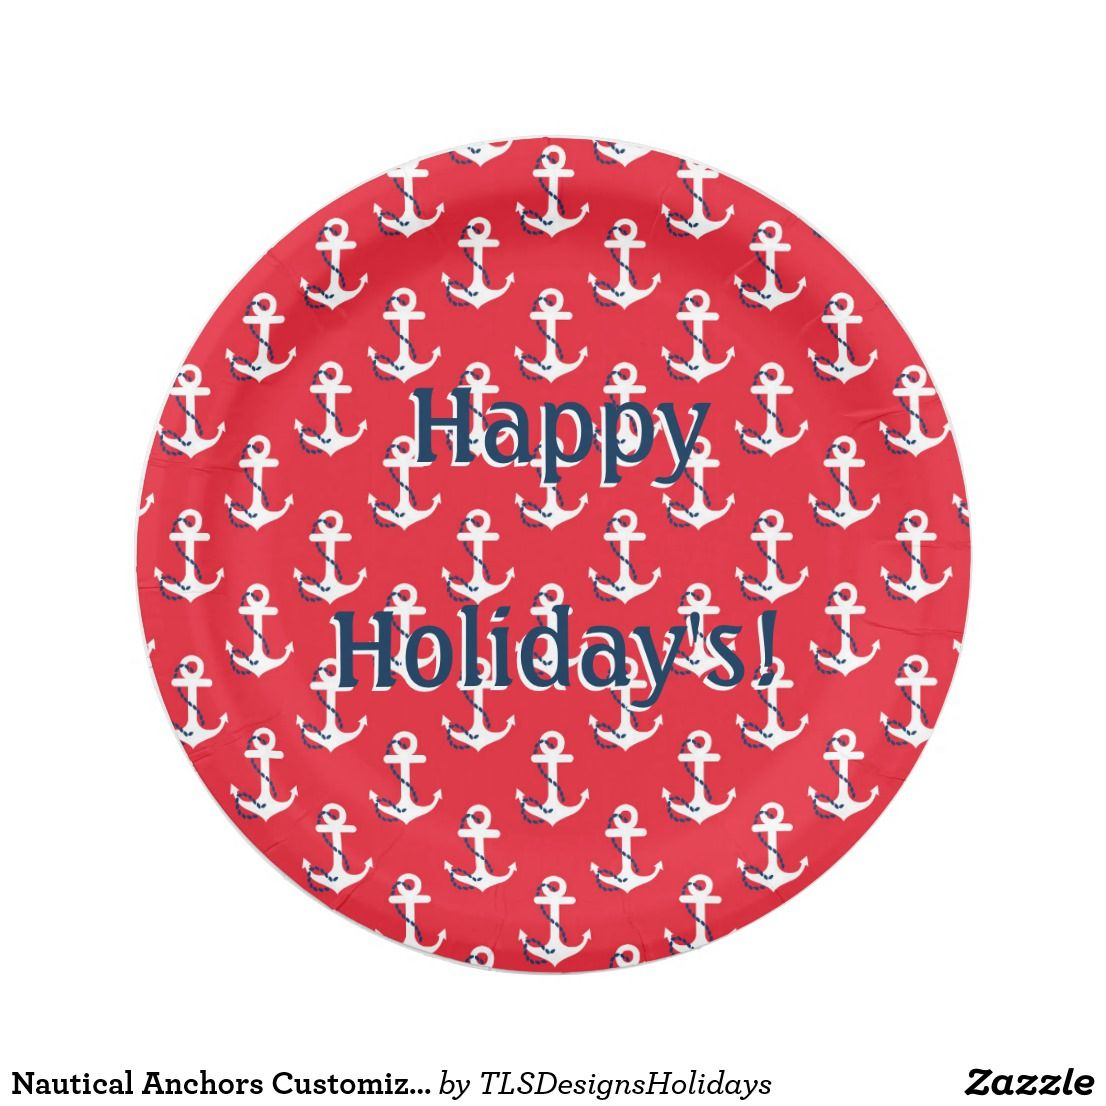 Nautical Anchors Customizable Holiday Message Paper Plate  sc 1 st  Pinterest & Nautical Anchors Customizable Holiday Message Paper Plate | Holiday ...